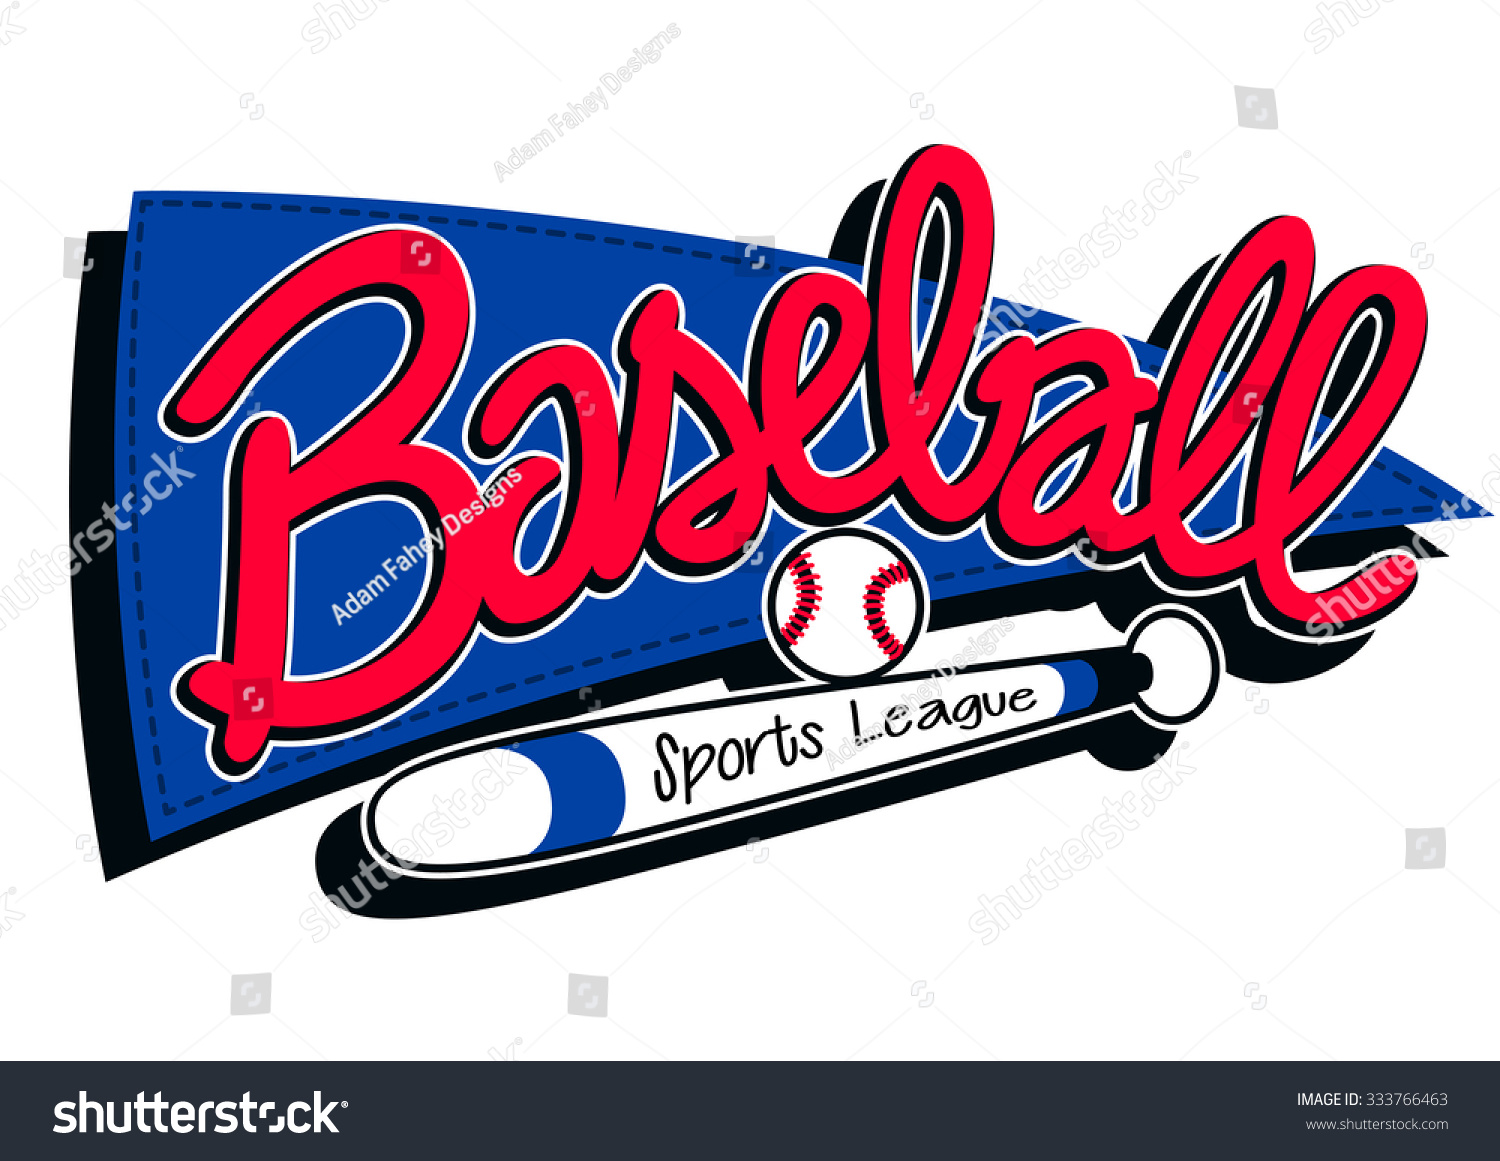 Welcome World League Of Beauty And Fashion Official Web: Baseball Sports League Childrens Banner Background Stock